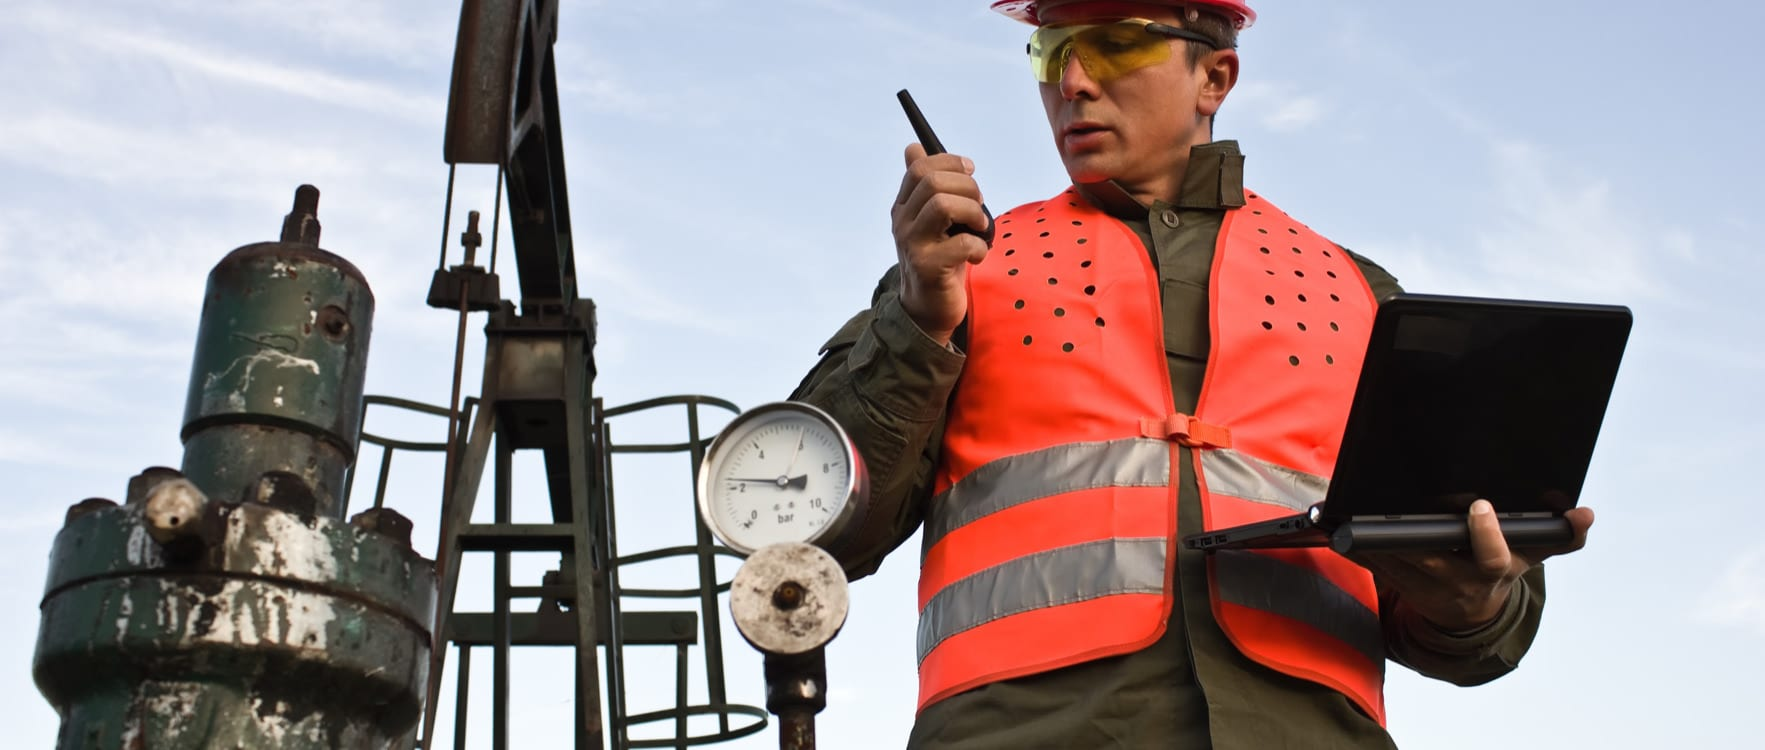 Man with safety gear inspecting a valve